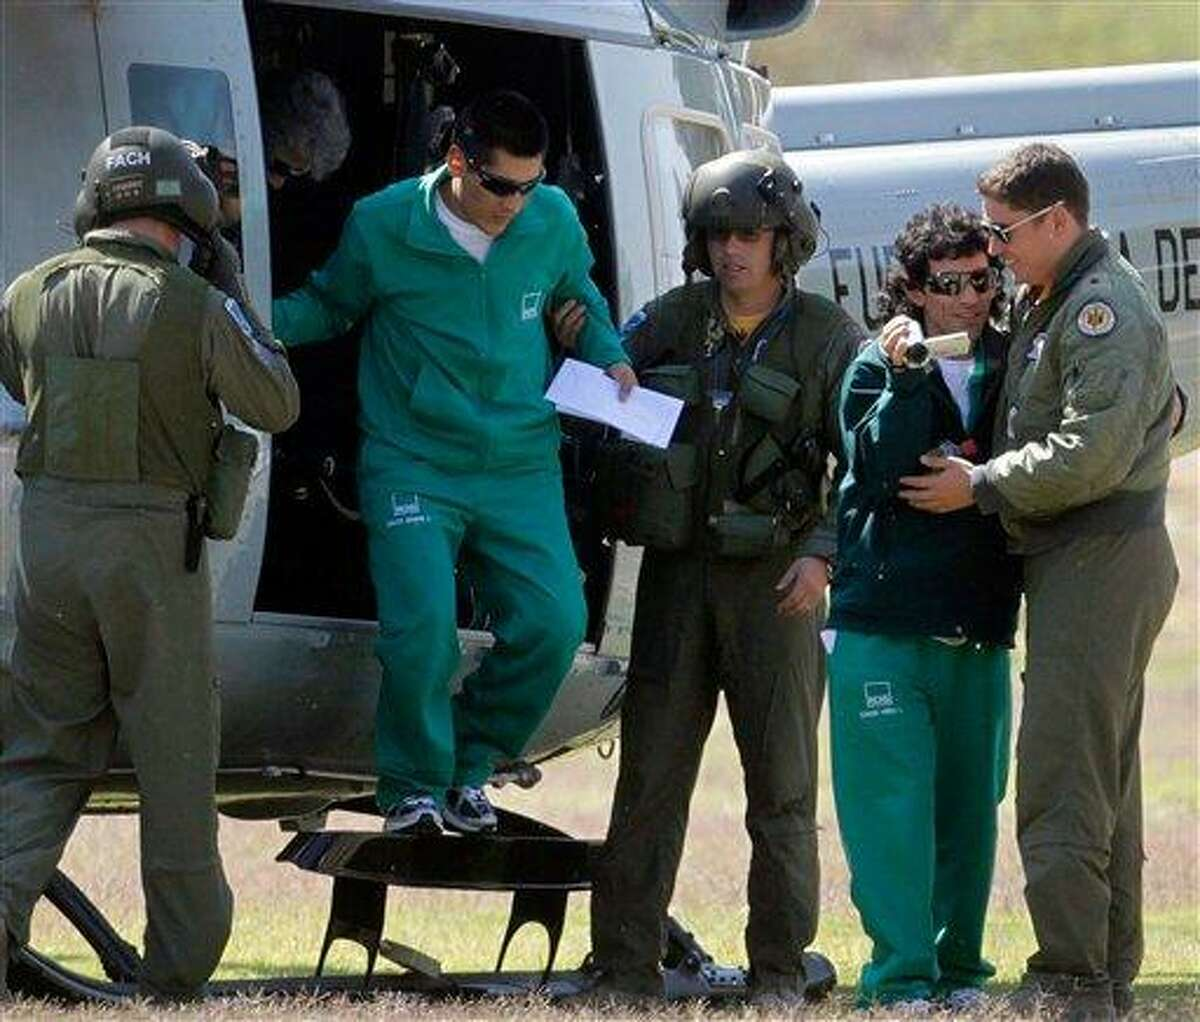 Rescued miners Claudio Yanez, second right, and Carlos Mamani Solis, second left, are helped by the crew of a Chilean Air Force helicopter upon their arrival to an Army airfield near a hospital in Copiapo after being rescued from the collapsed San Jose gold and copper mine in Chile, Wednesday, Oct. 13, 2010. (AP Photo/La Tercera, Mario Davila)